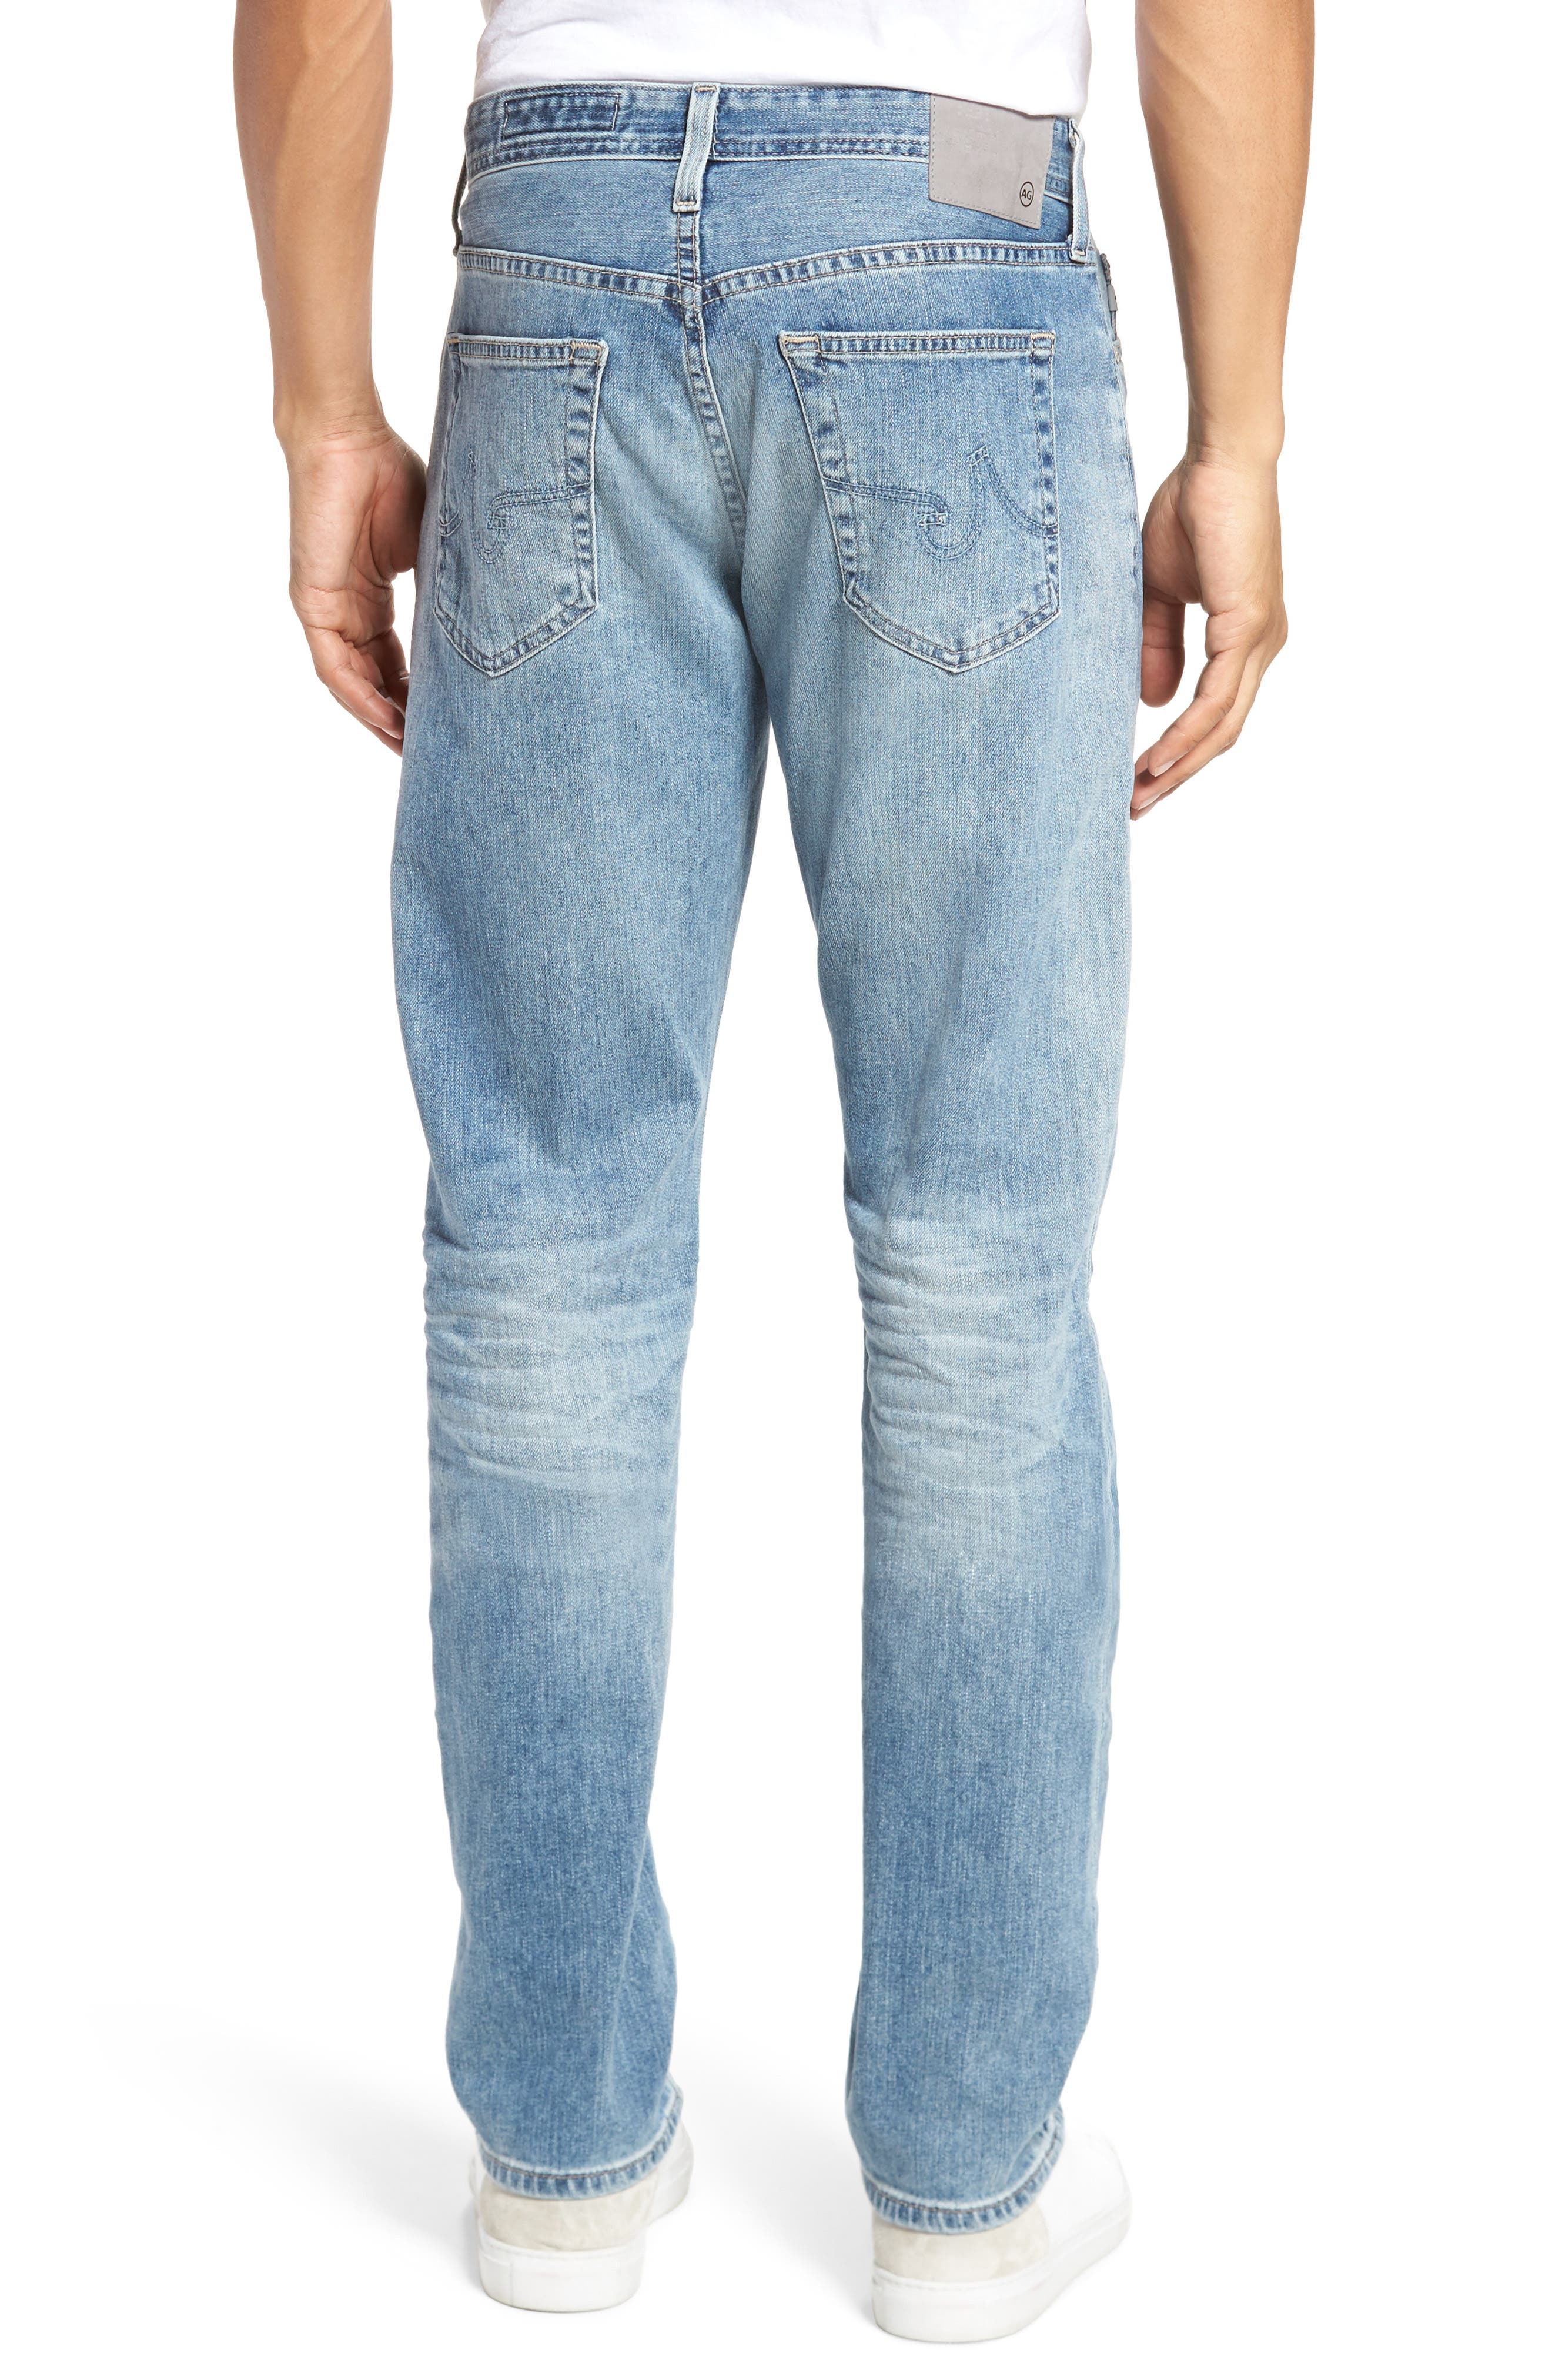 Everett Slim Straight Fit Jeans,                             Alternate thumbnail 2, color,                             452